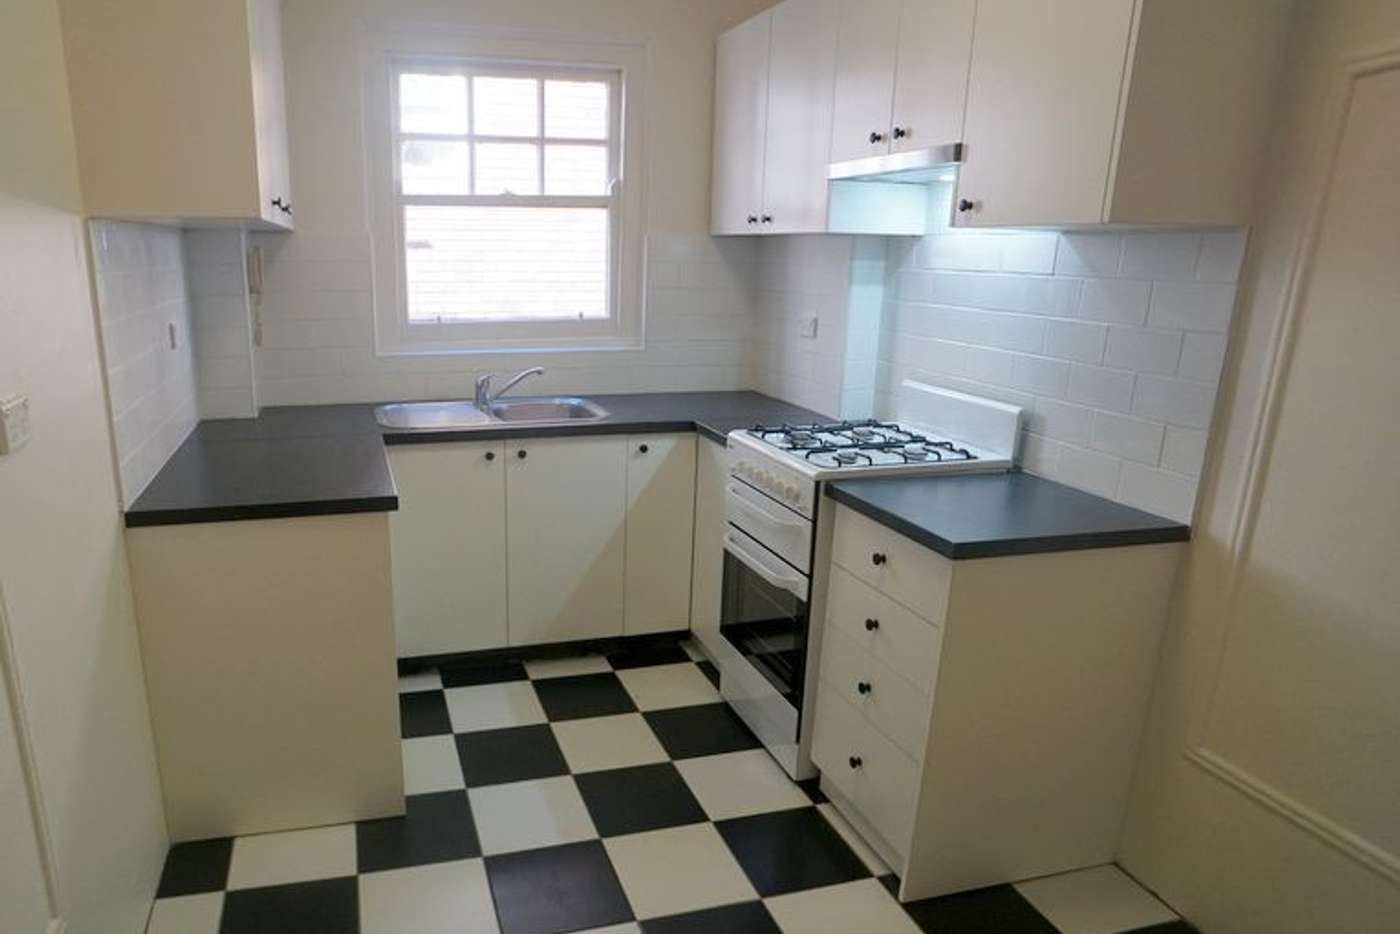 Main view of Homely apartment listing, 8/56 High Street, Randwick NSW 2031